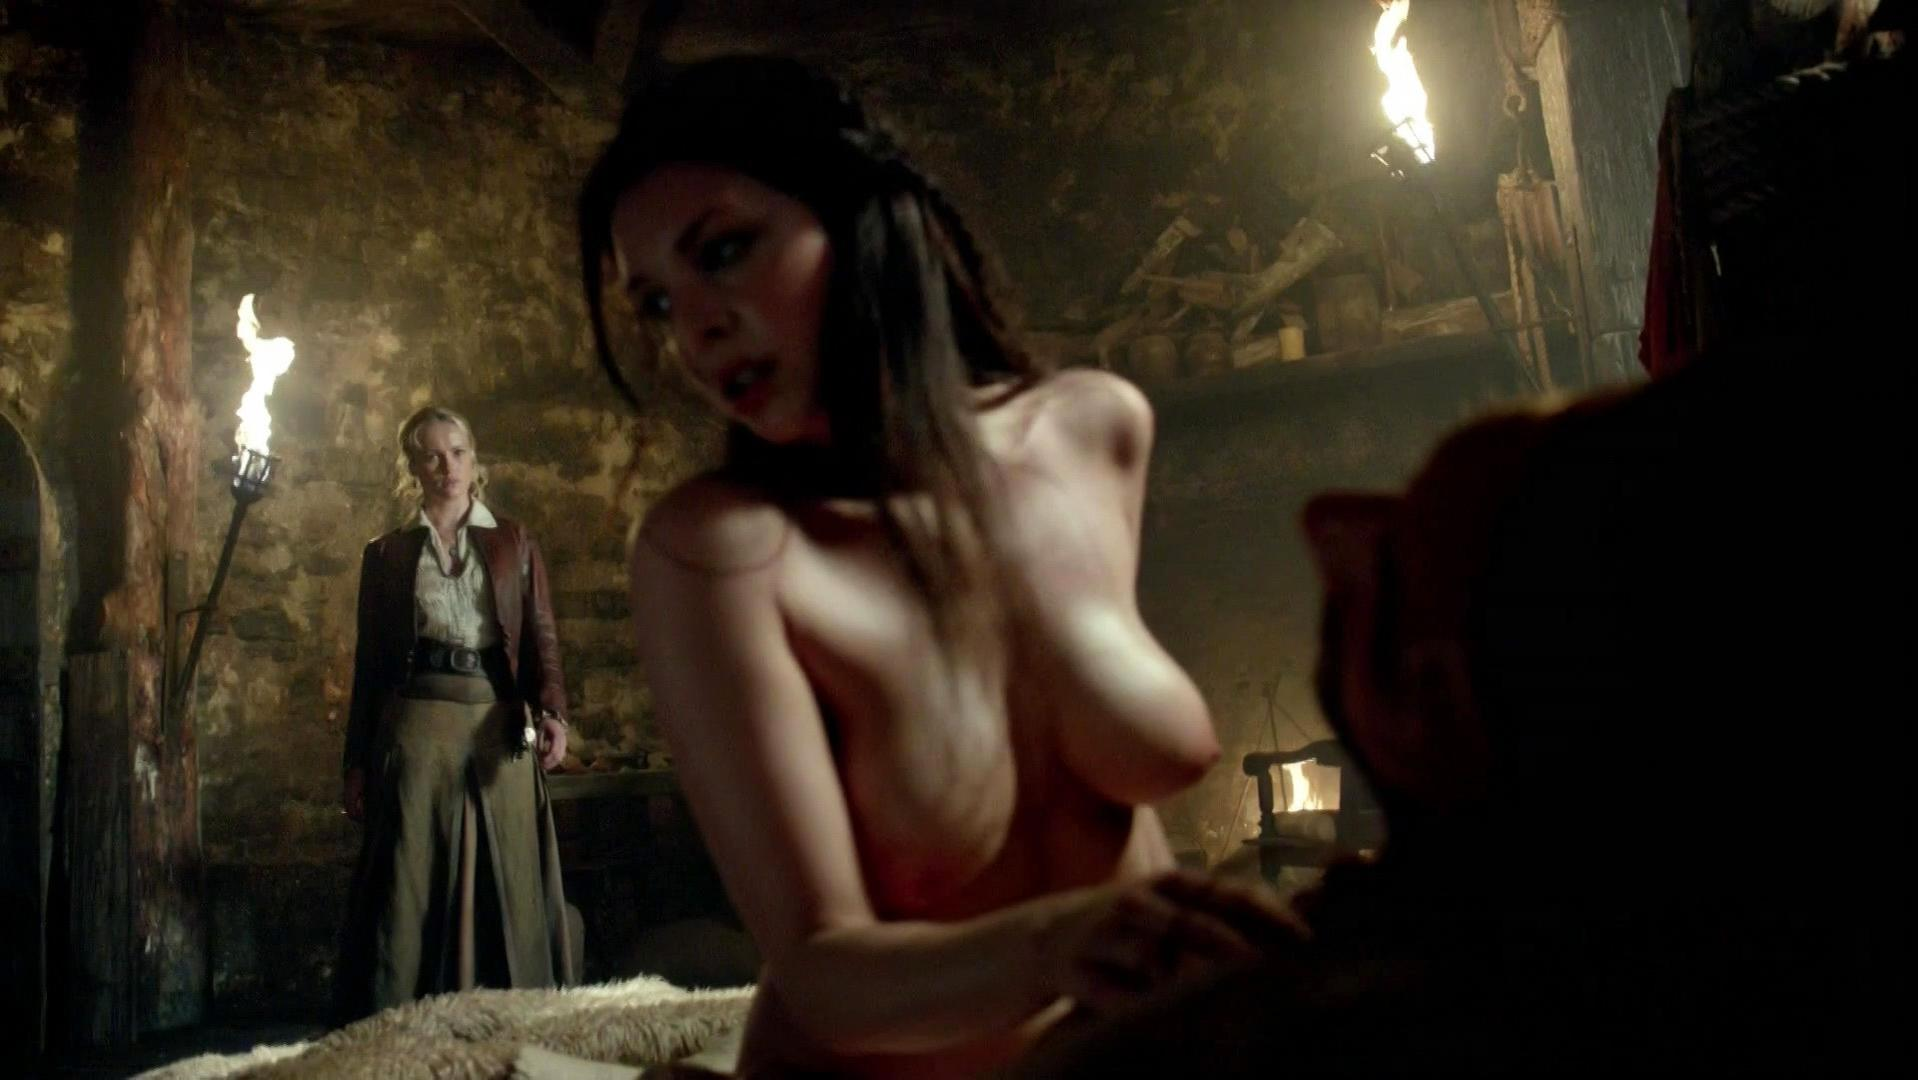 Black sails jessica parker sex scene